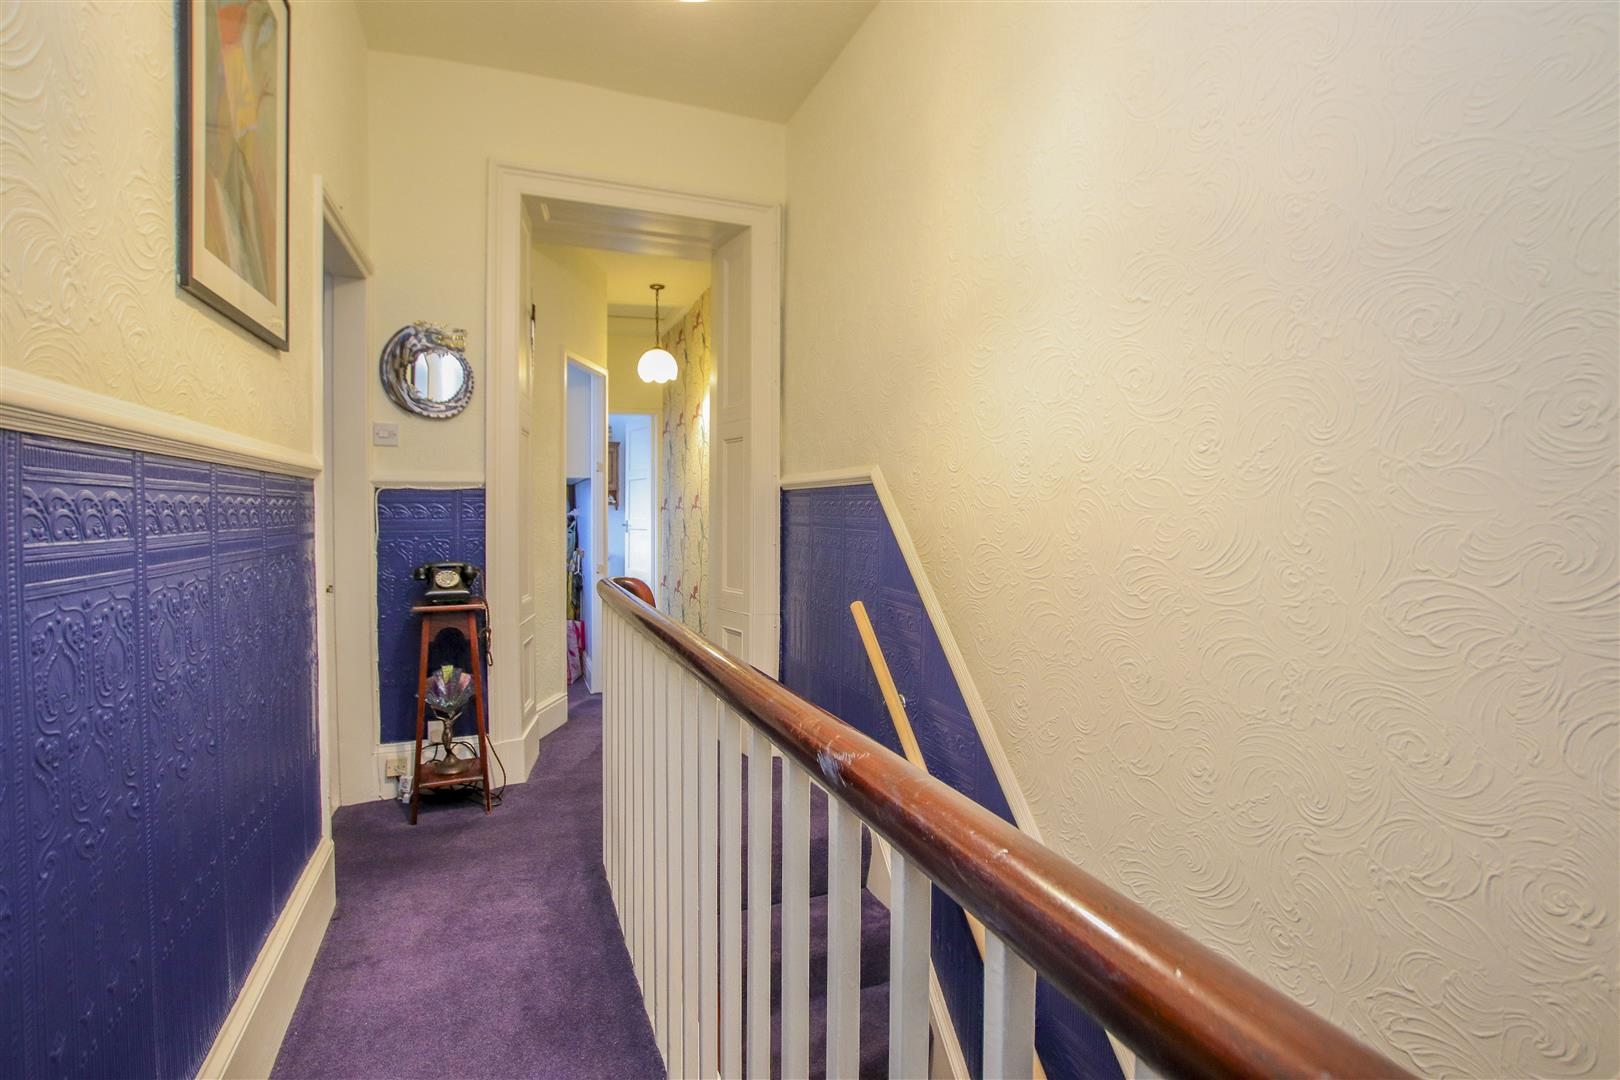 3 Bedroom Terraced House For Sale - Image 20